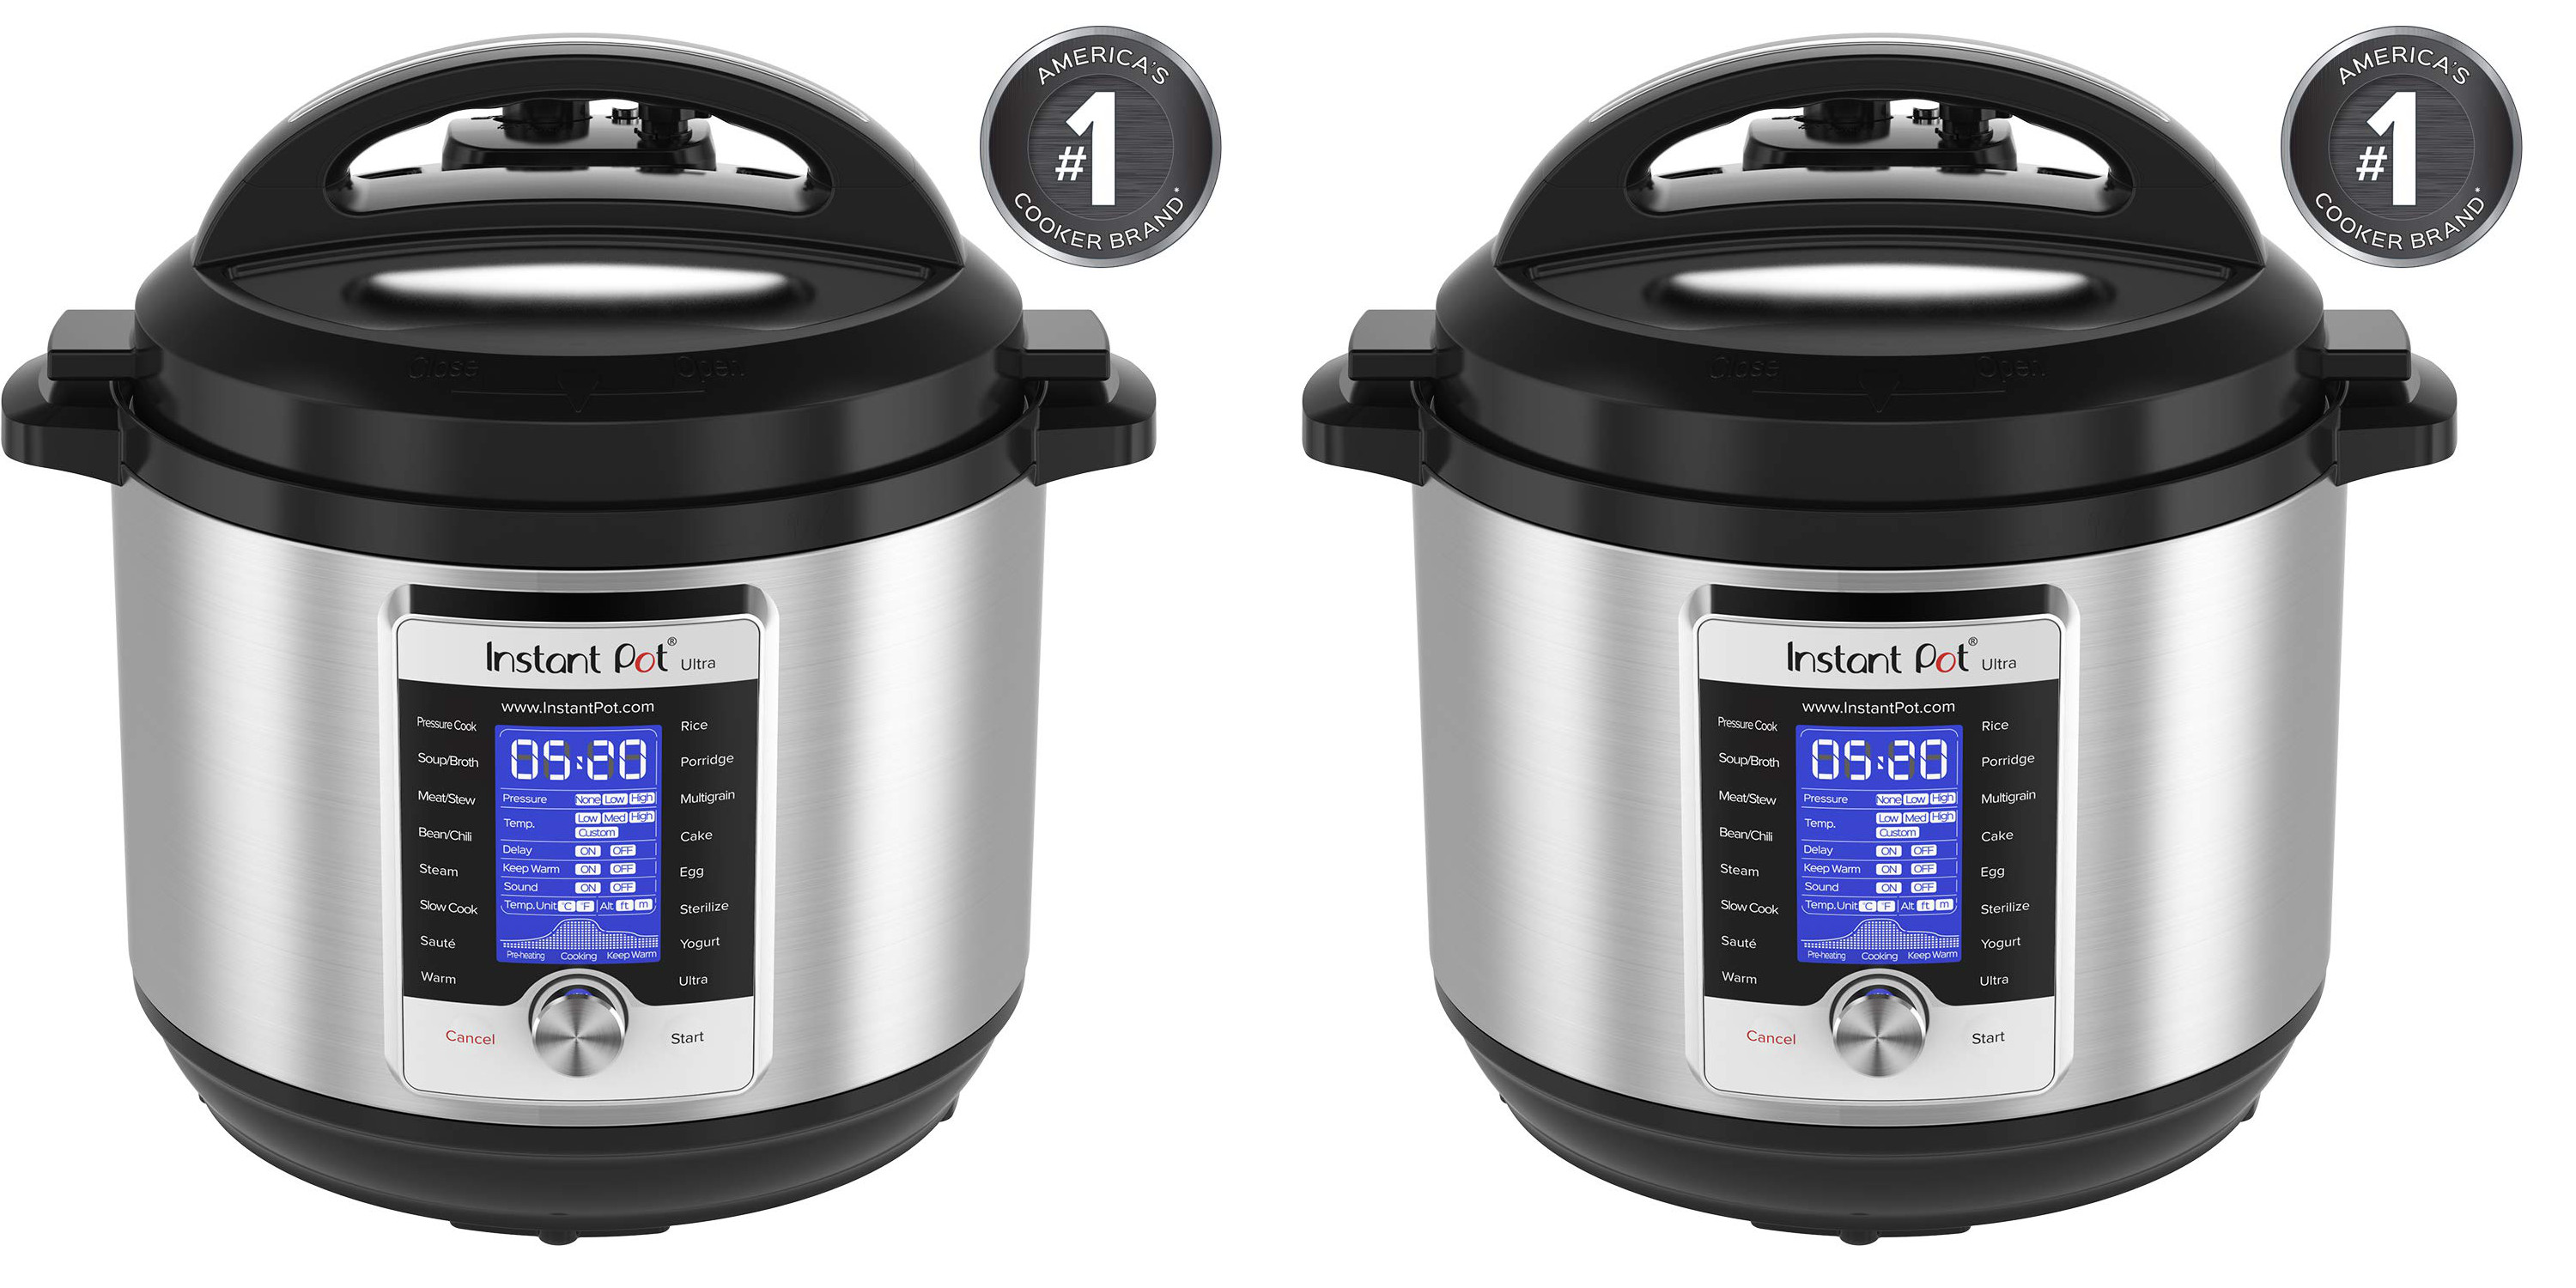 Bring home the family-sized Instant Pot Ultra 8-quart Multi Cooker for $119 shipped (Reg. $180)